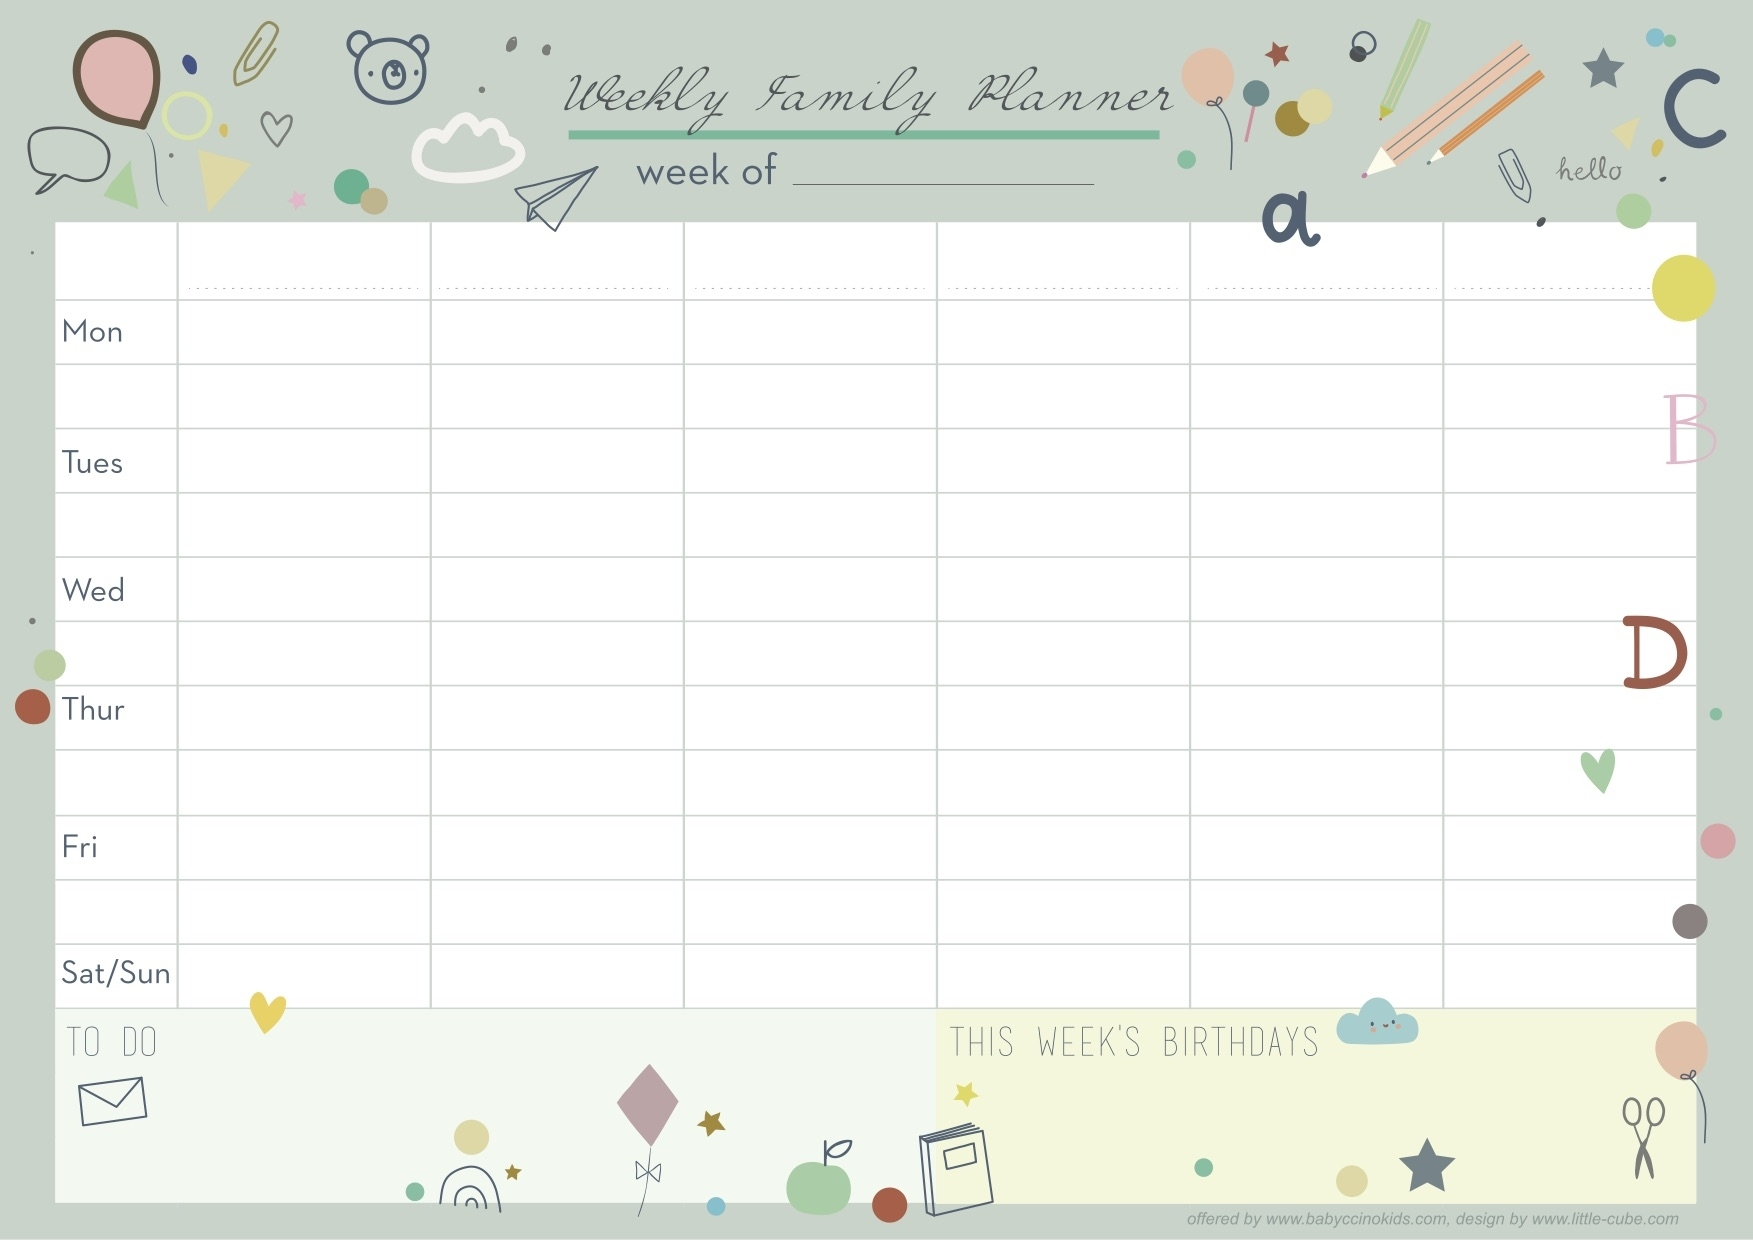 Organise Your Life With Our Newly Designed Weekly Planner! Babyccino Kids: Daily Tips, Children